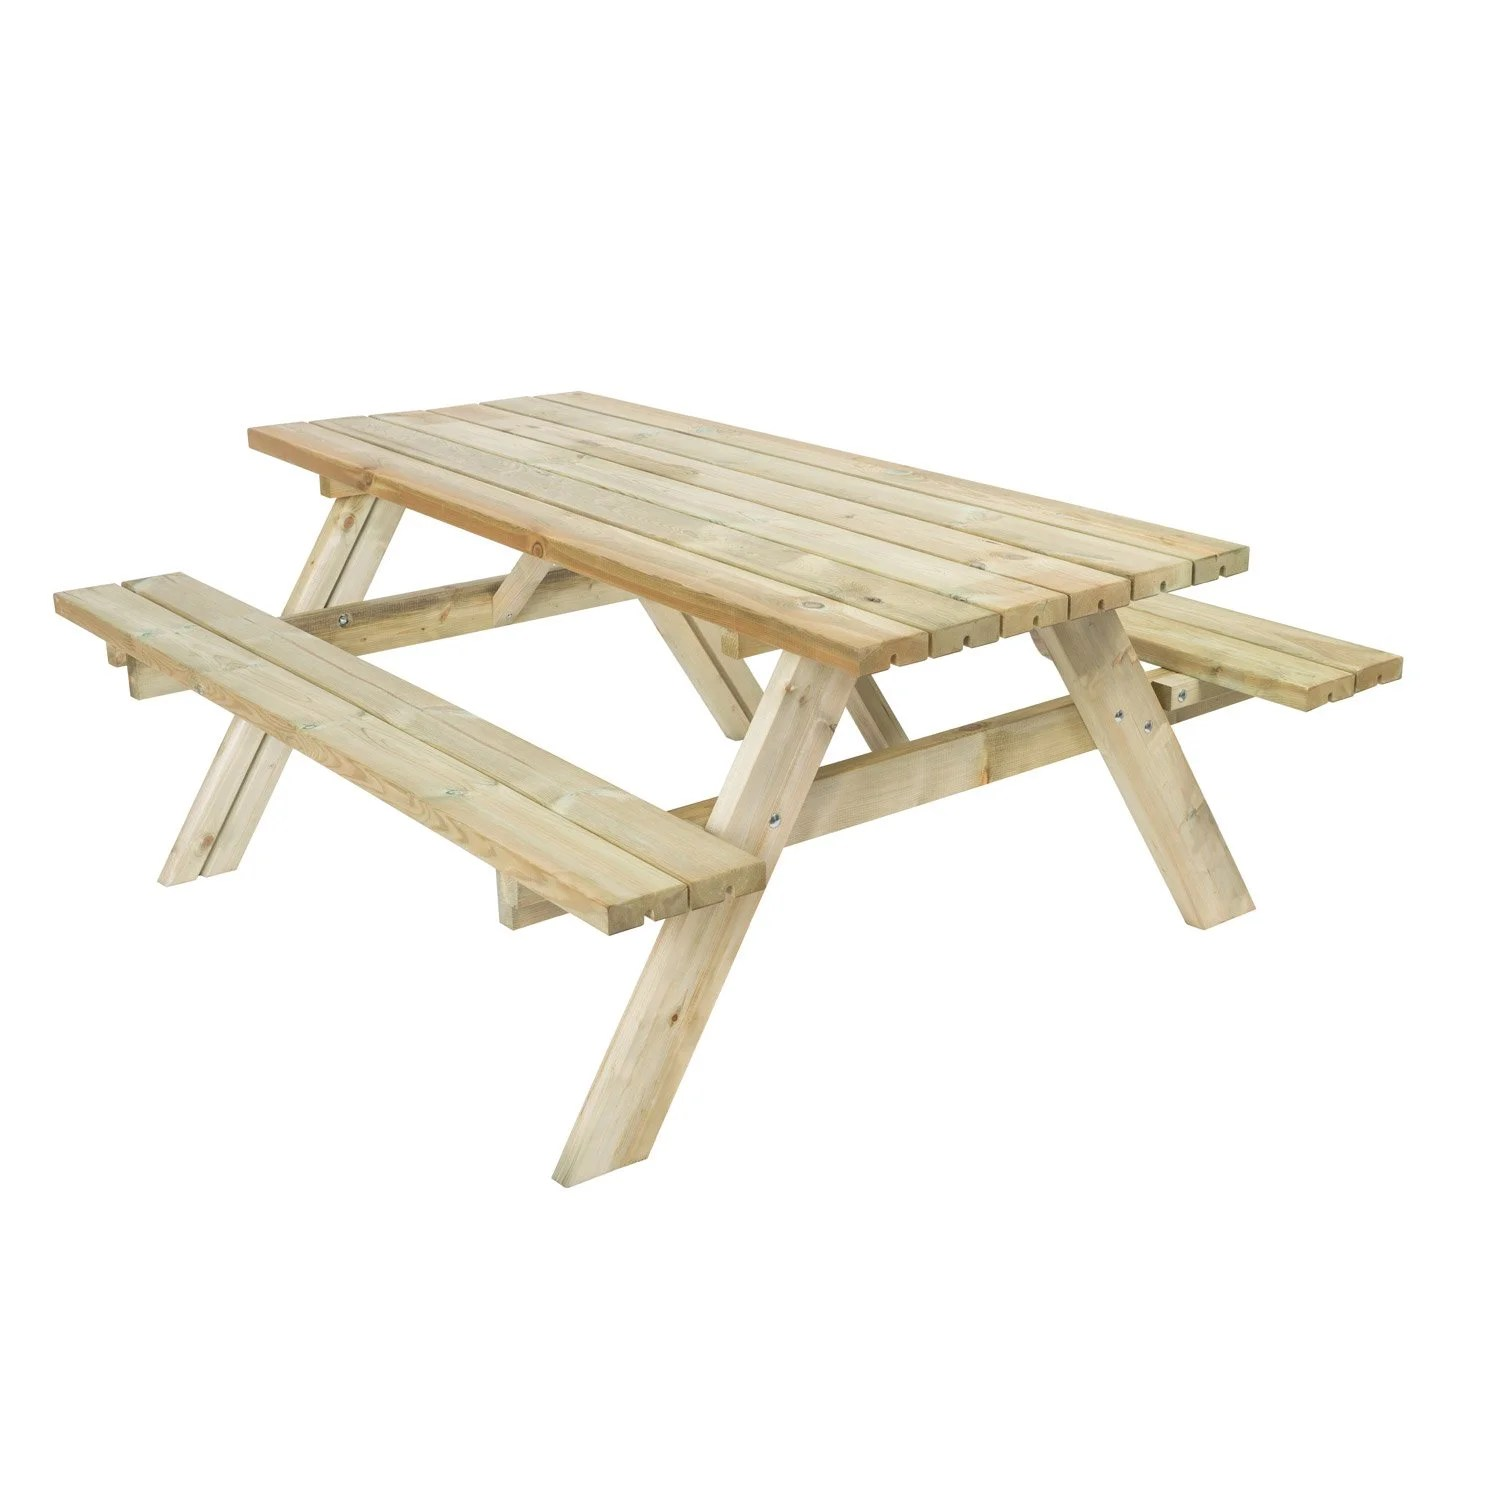 Leroy Merlin Mobilier De Jardin Table Jardin Leroy Merlin Table De Jardin Aluminium Leroy Merlin